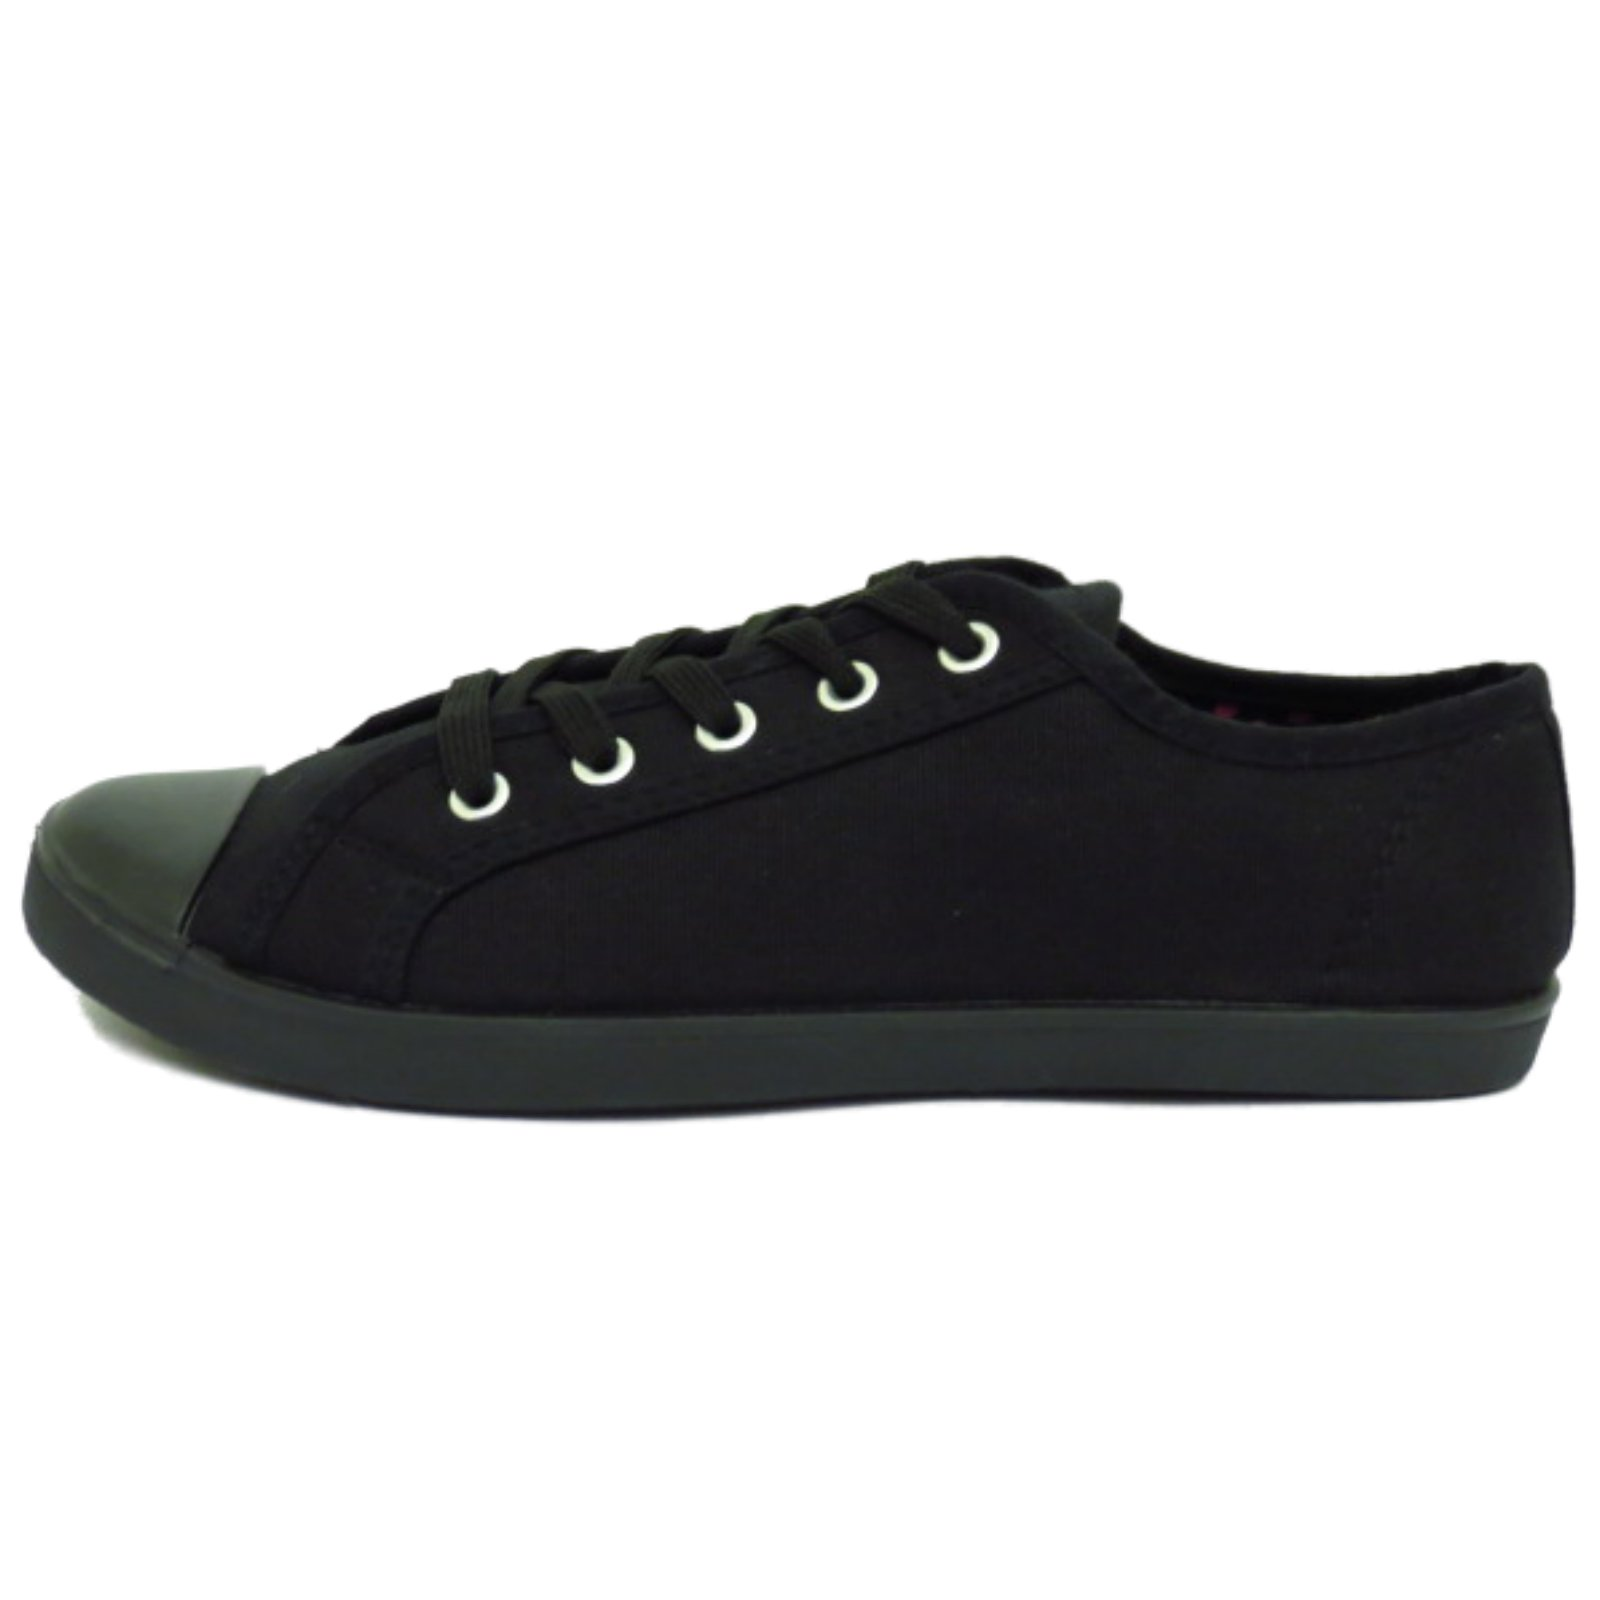 LADIES-BLACK-CANVAS-FLAT-LACE-UP-TRAINER-PLIMSOLL-PUMPS-CASUAL-SHOES-SIZES-3-9 thumbnail 7